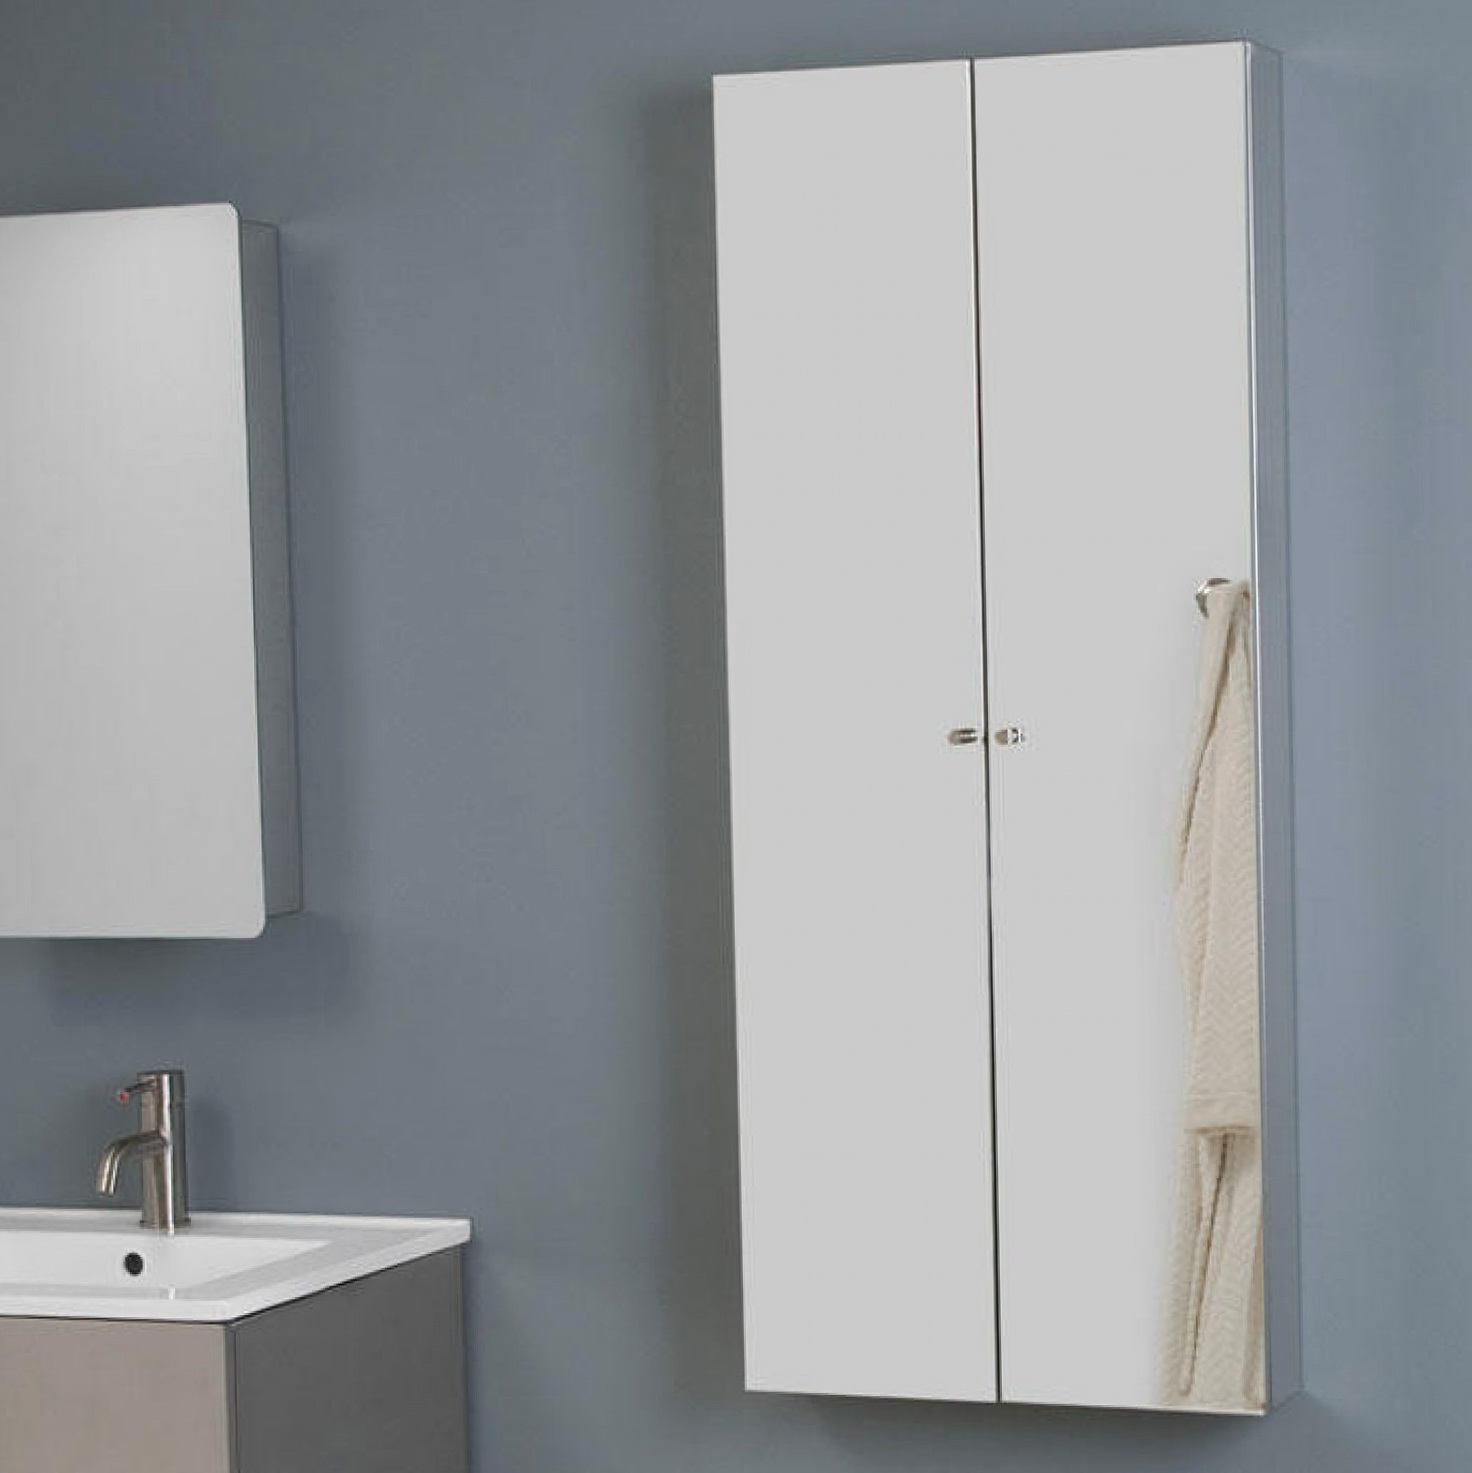 Mirrored Medicine Cabinets For Bathroom